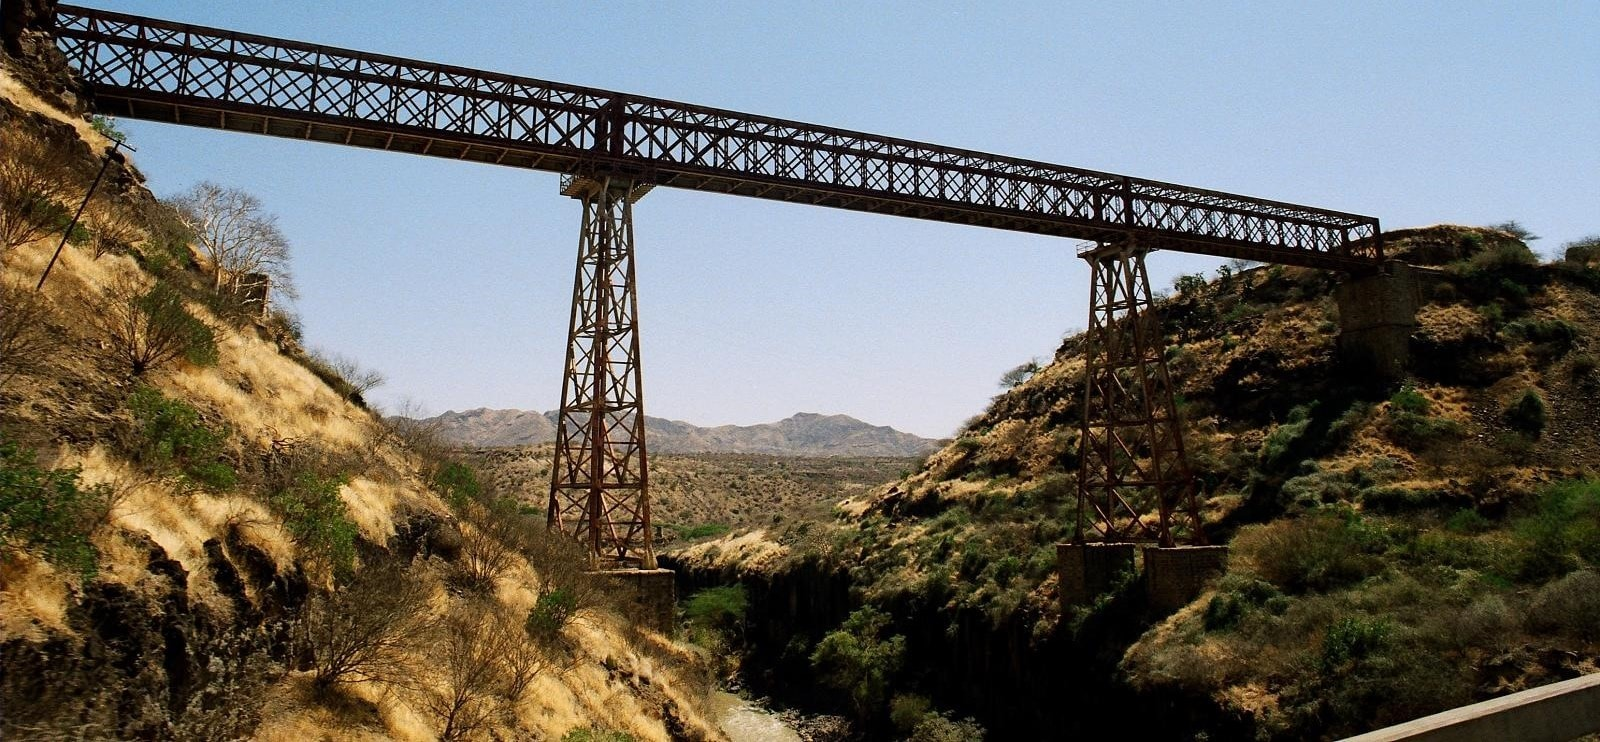 Railway bridge in Ethiopia (Photo: Tristam Sparks/Flickr)